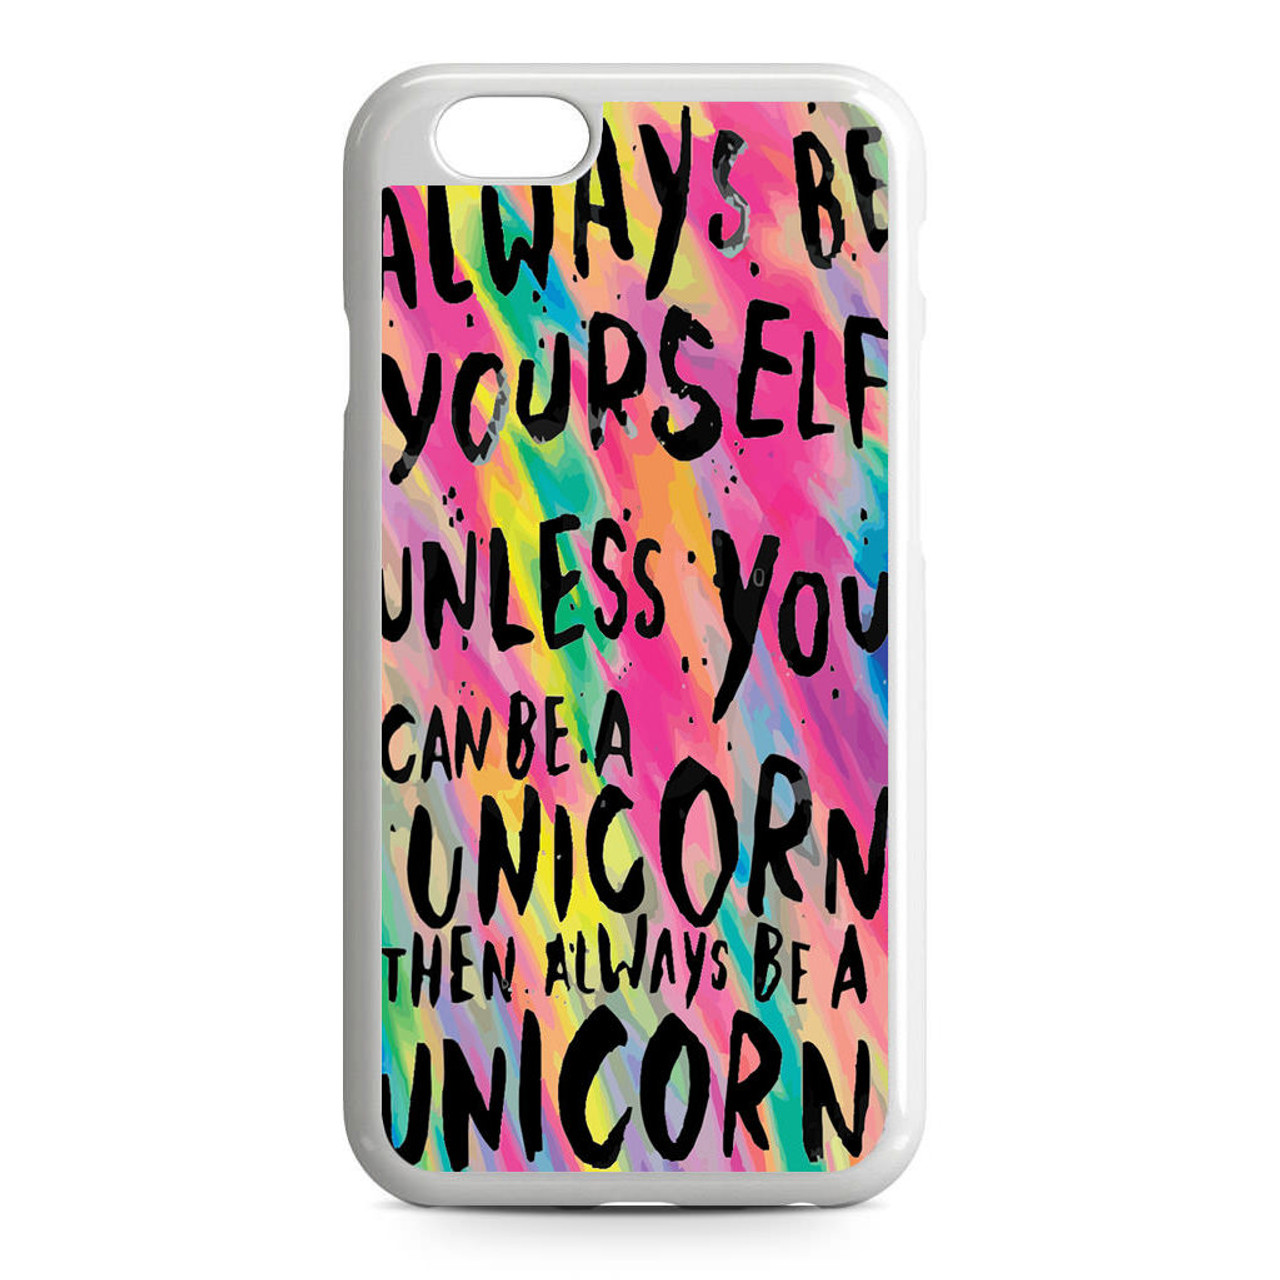 Always be an unicorn iphone 6 / 6s case